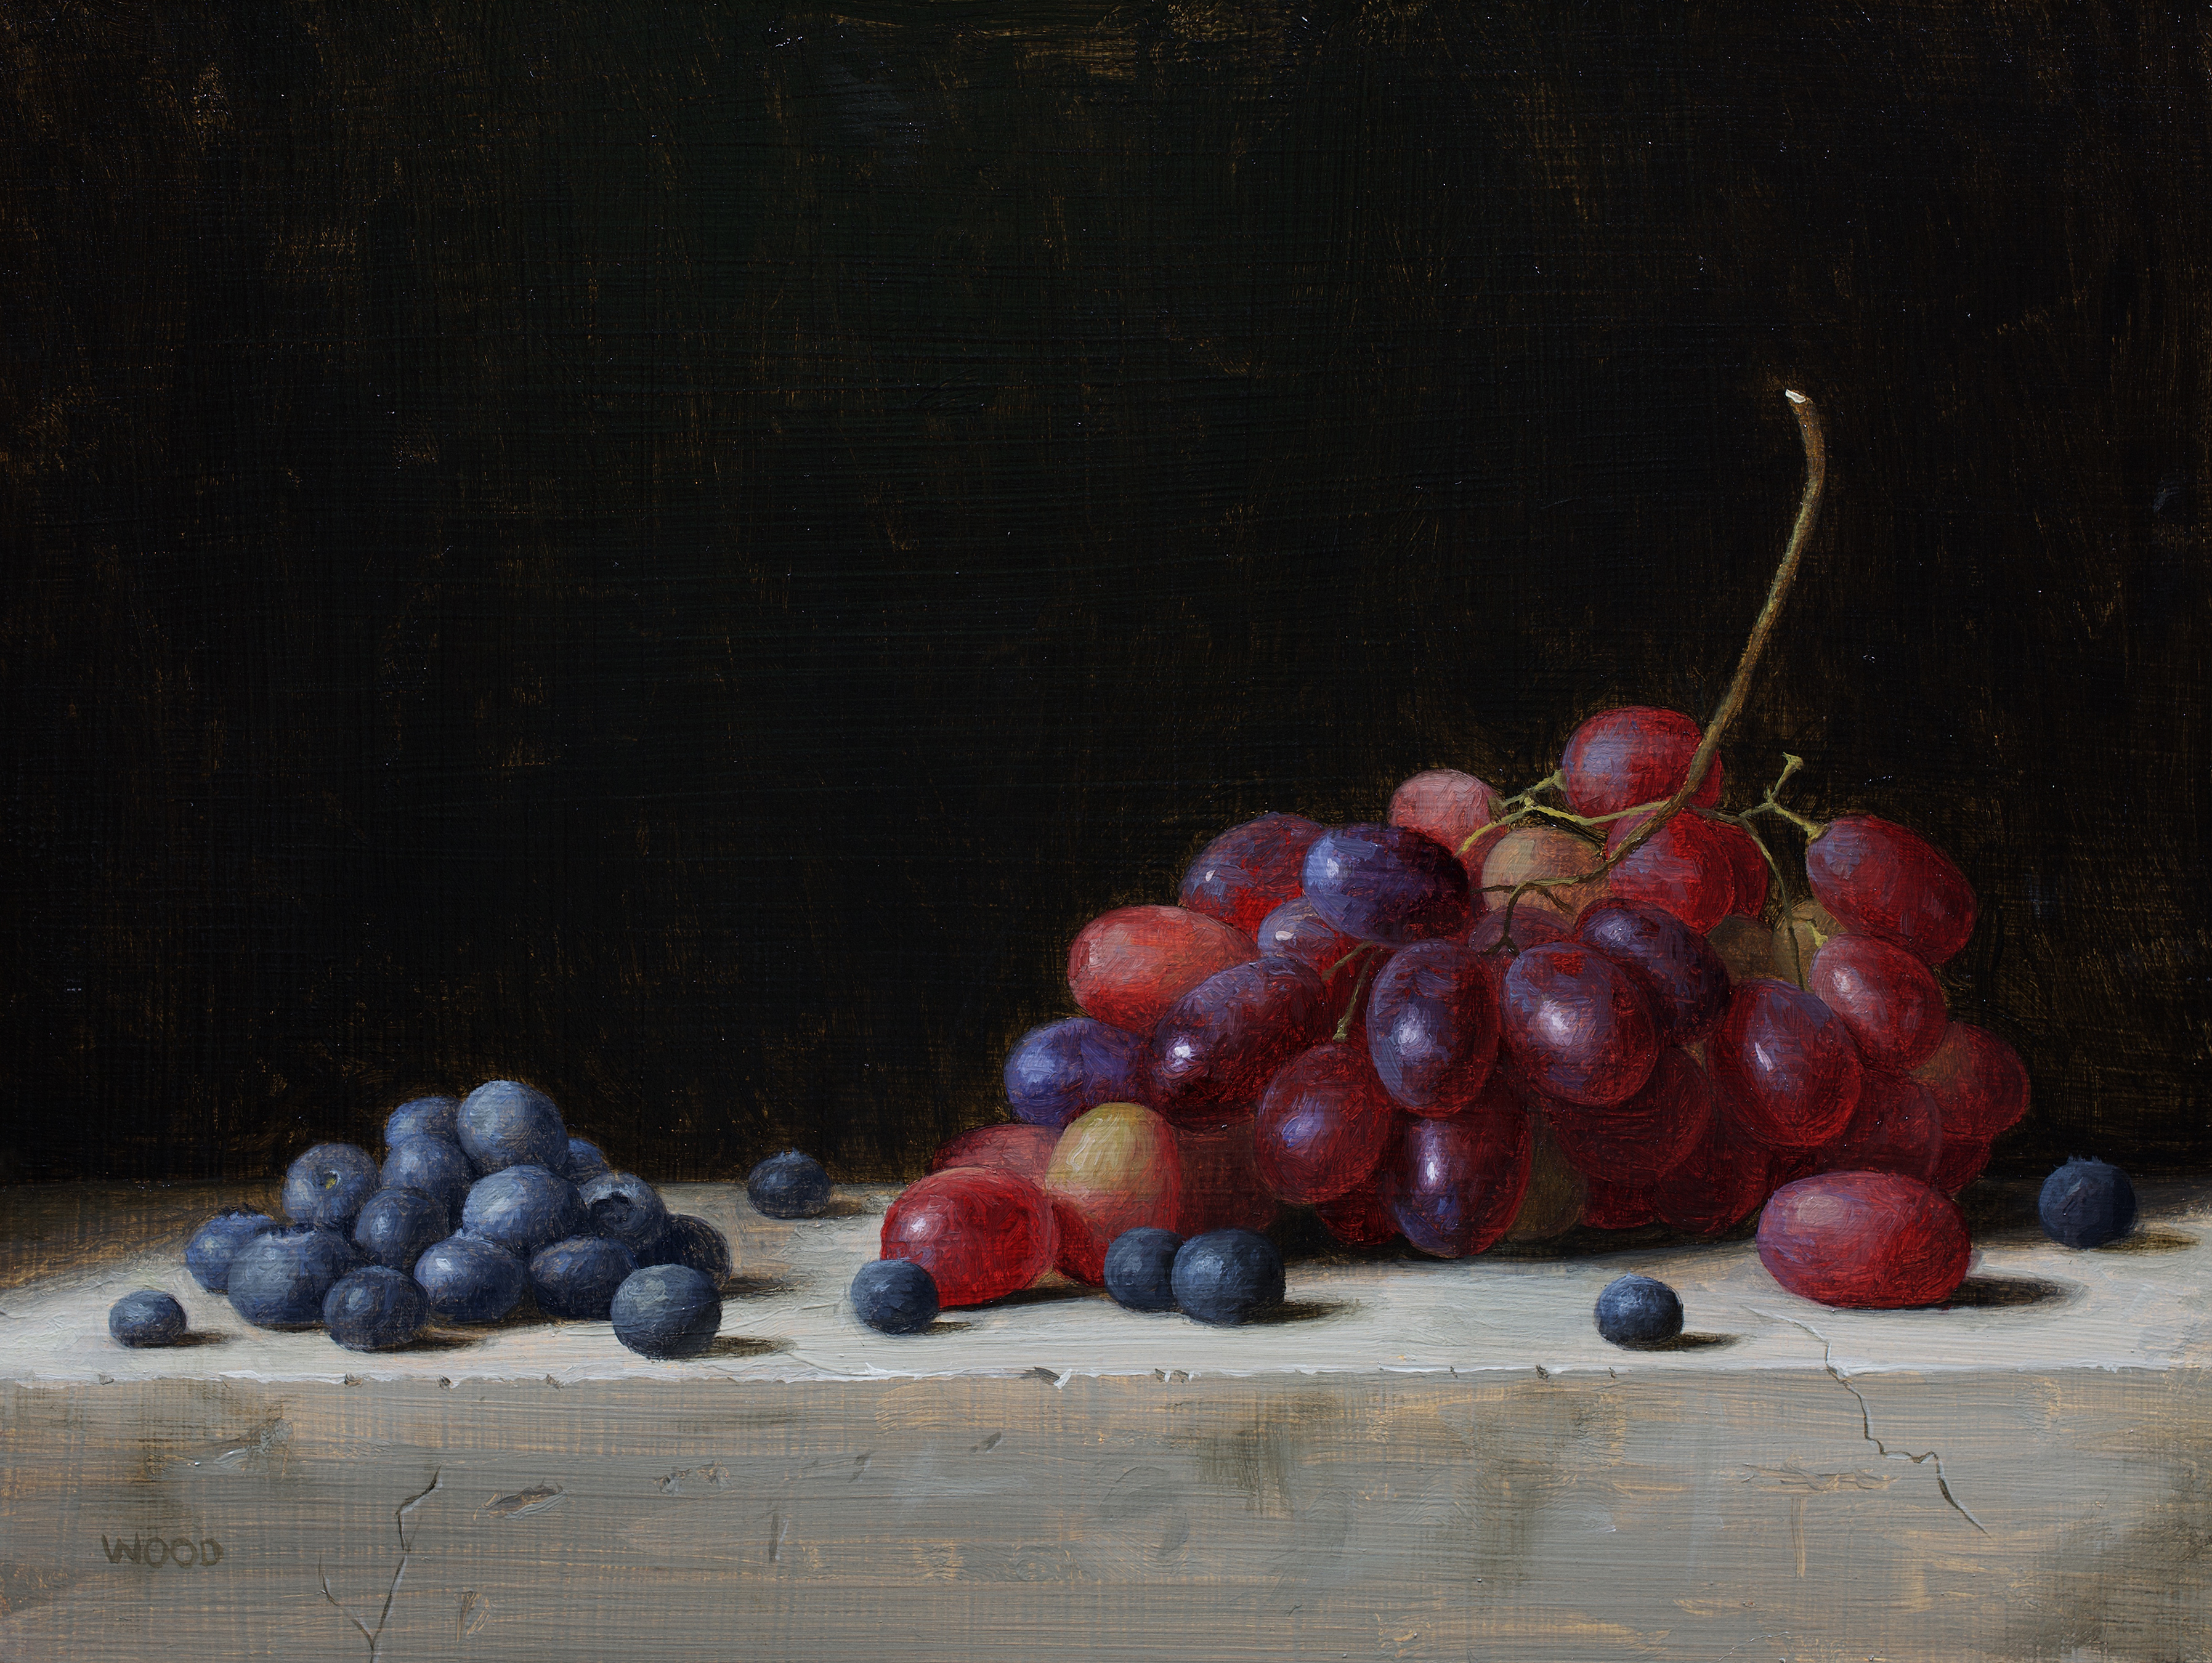 Grapes and Blueberries